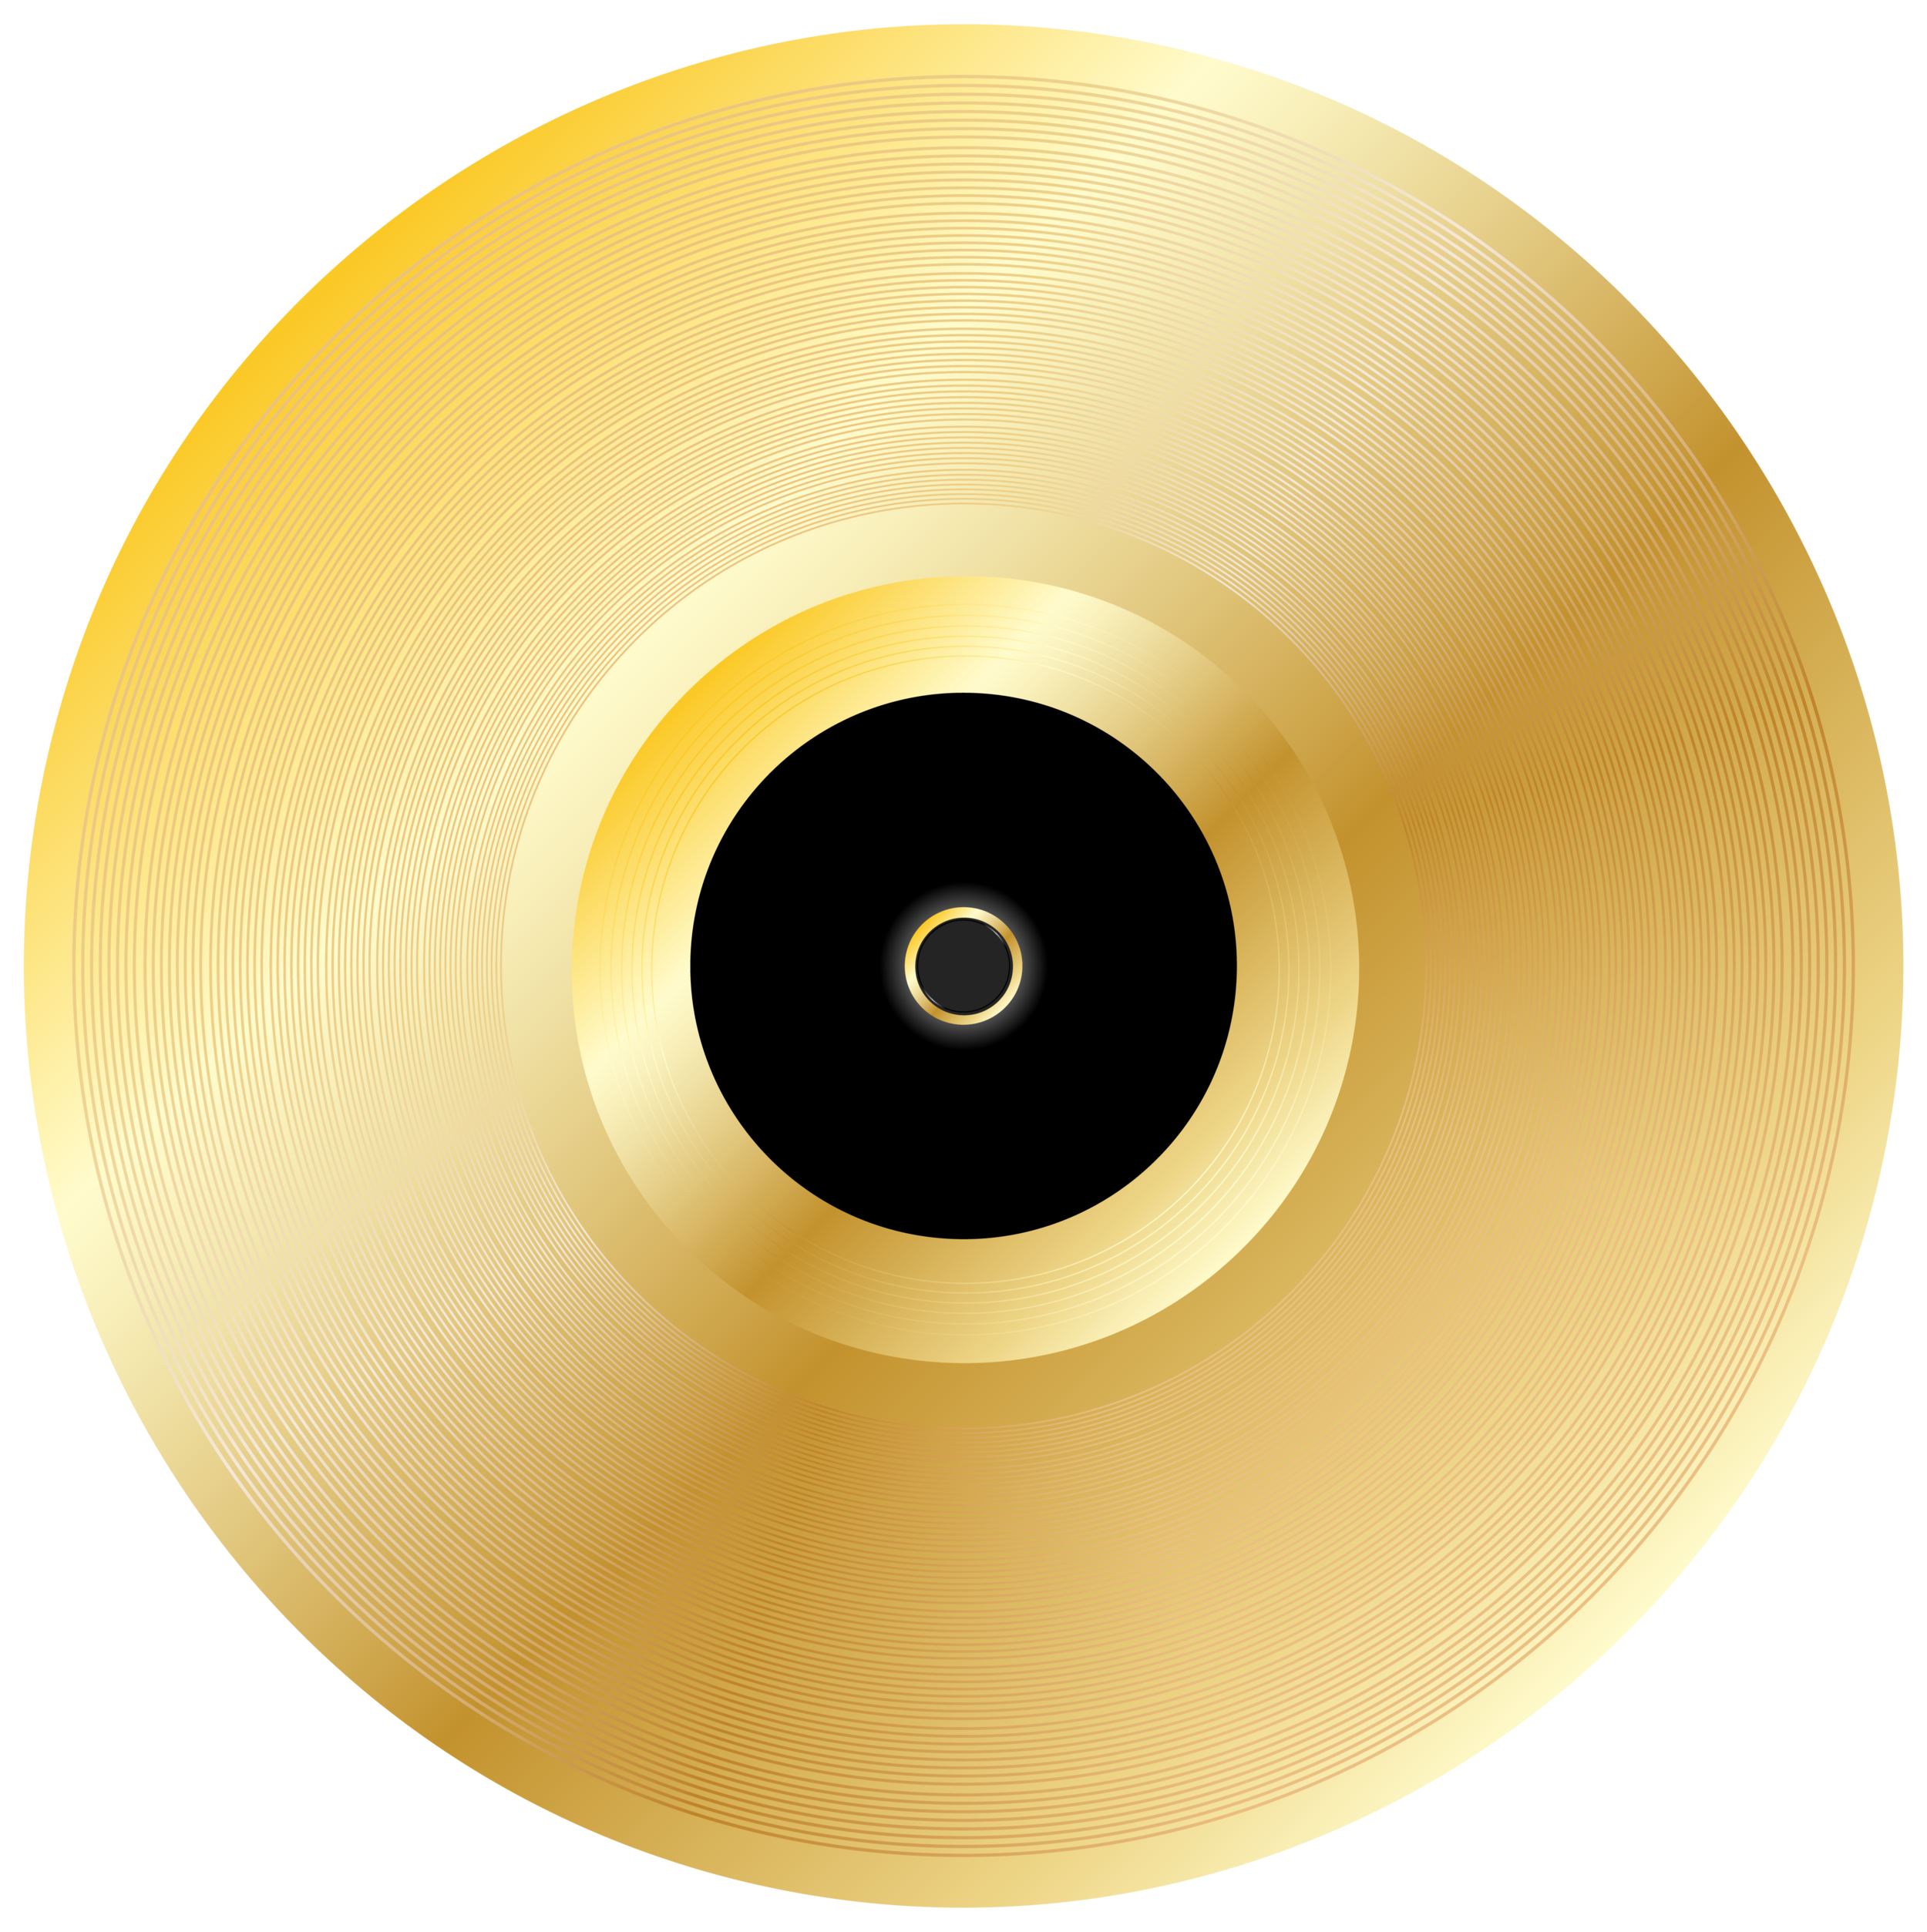 """Golden Disk  as """"Arranger"""" of band """"Balão Mágico""""´s CD in 1989 by Sony Music."""